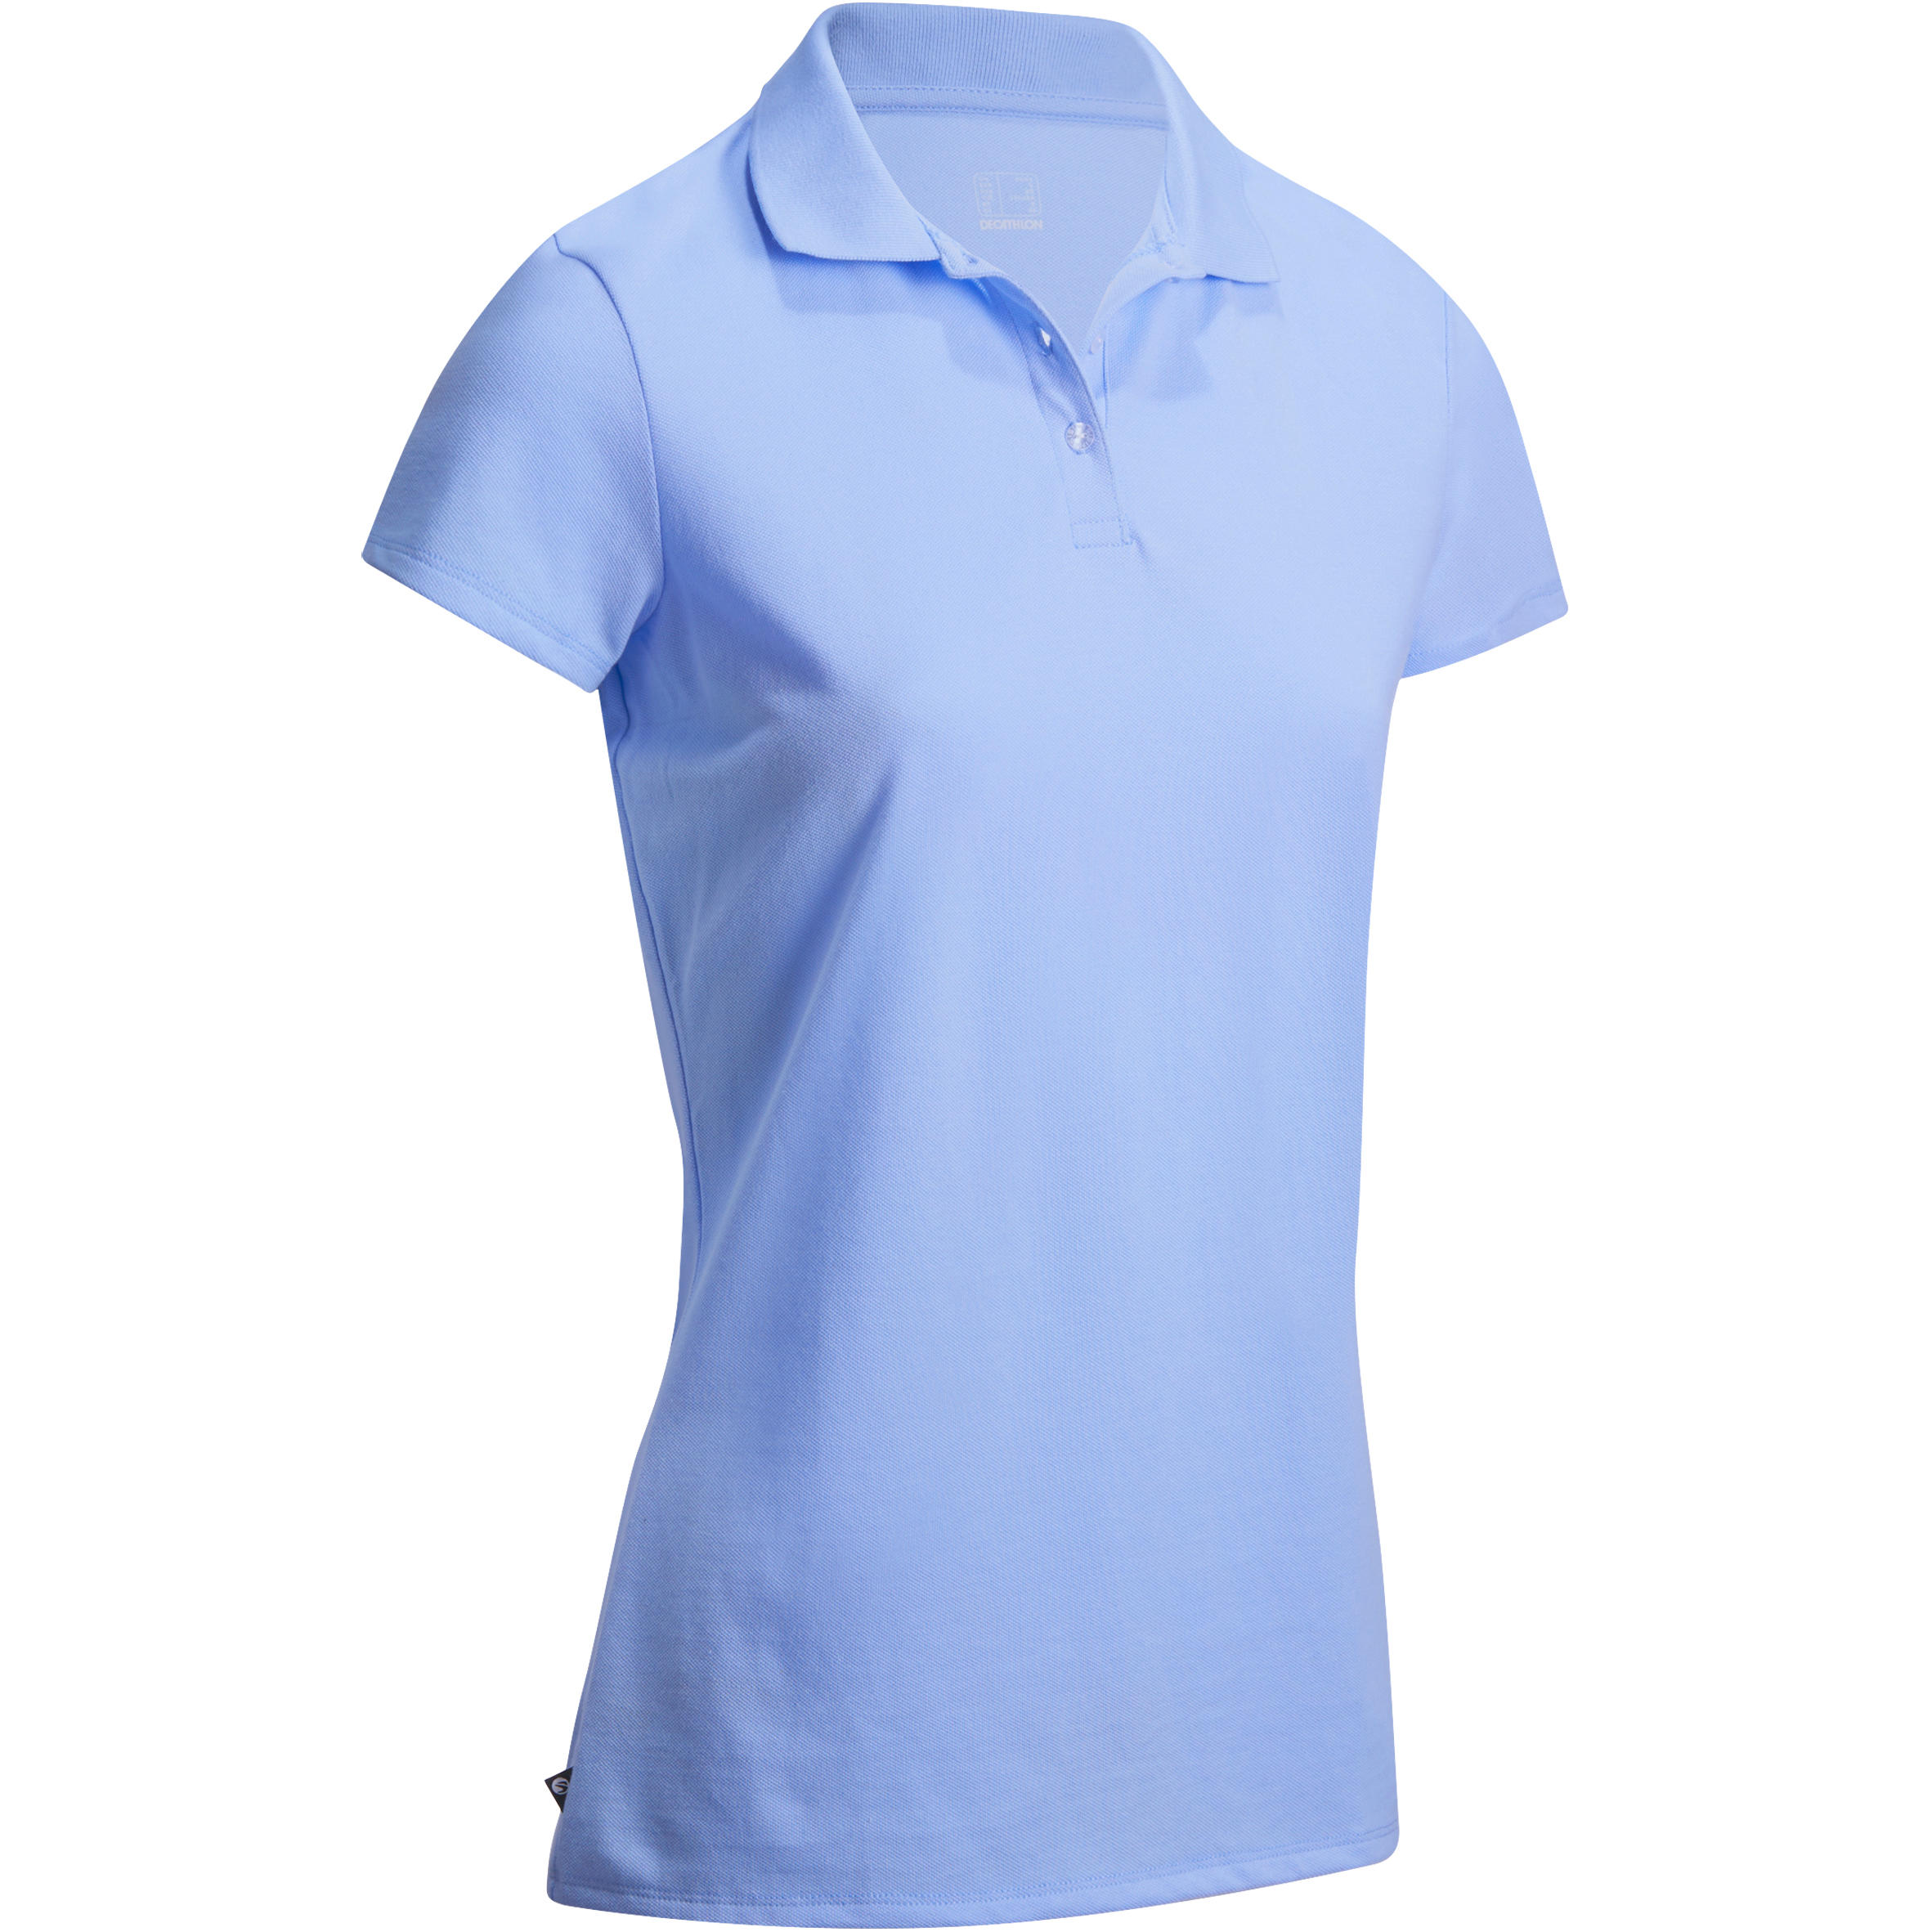 Golf Wanita Polo 100 - Sky Blue